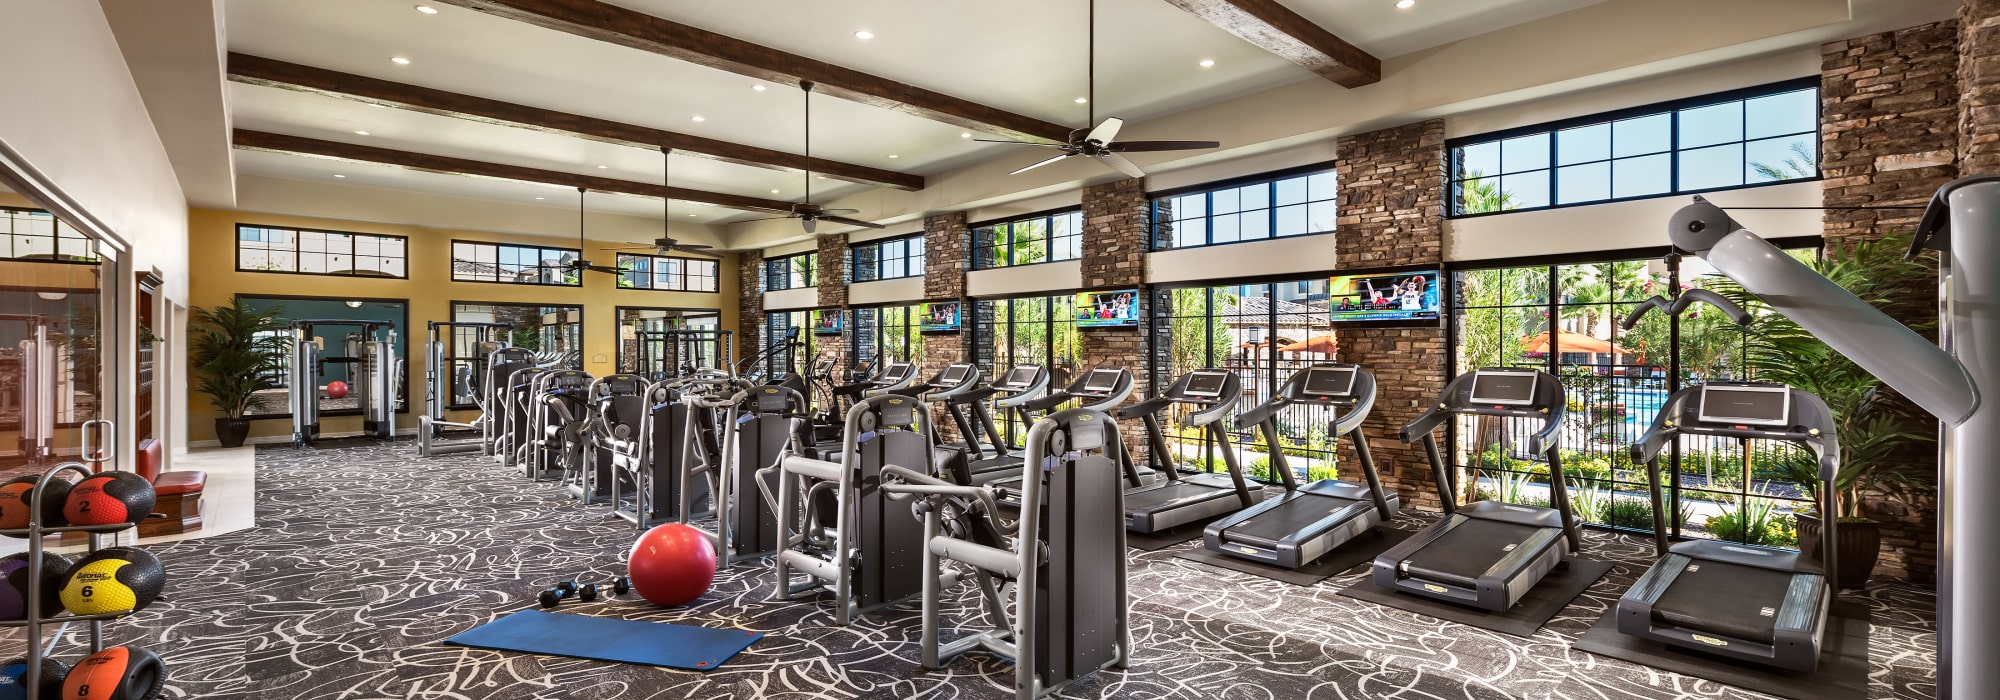 Fully equipped fitness center at San Privada in Gilbert, Arizona